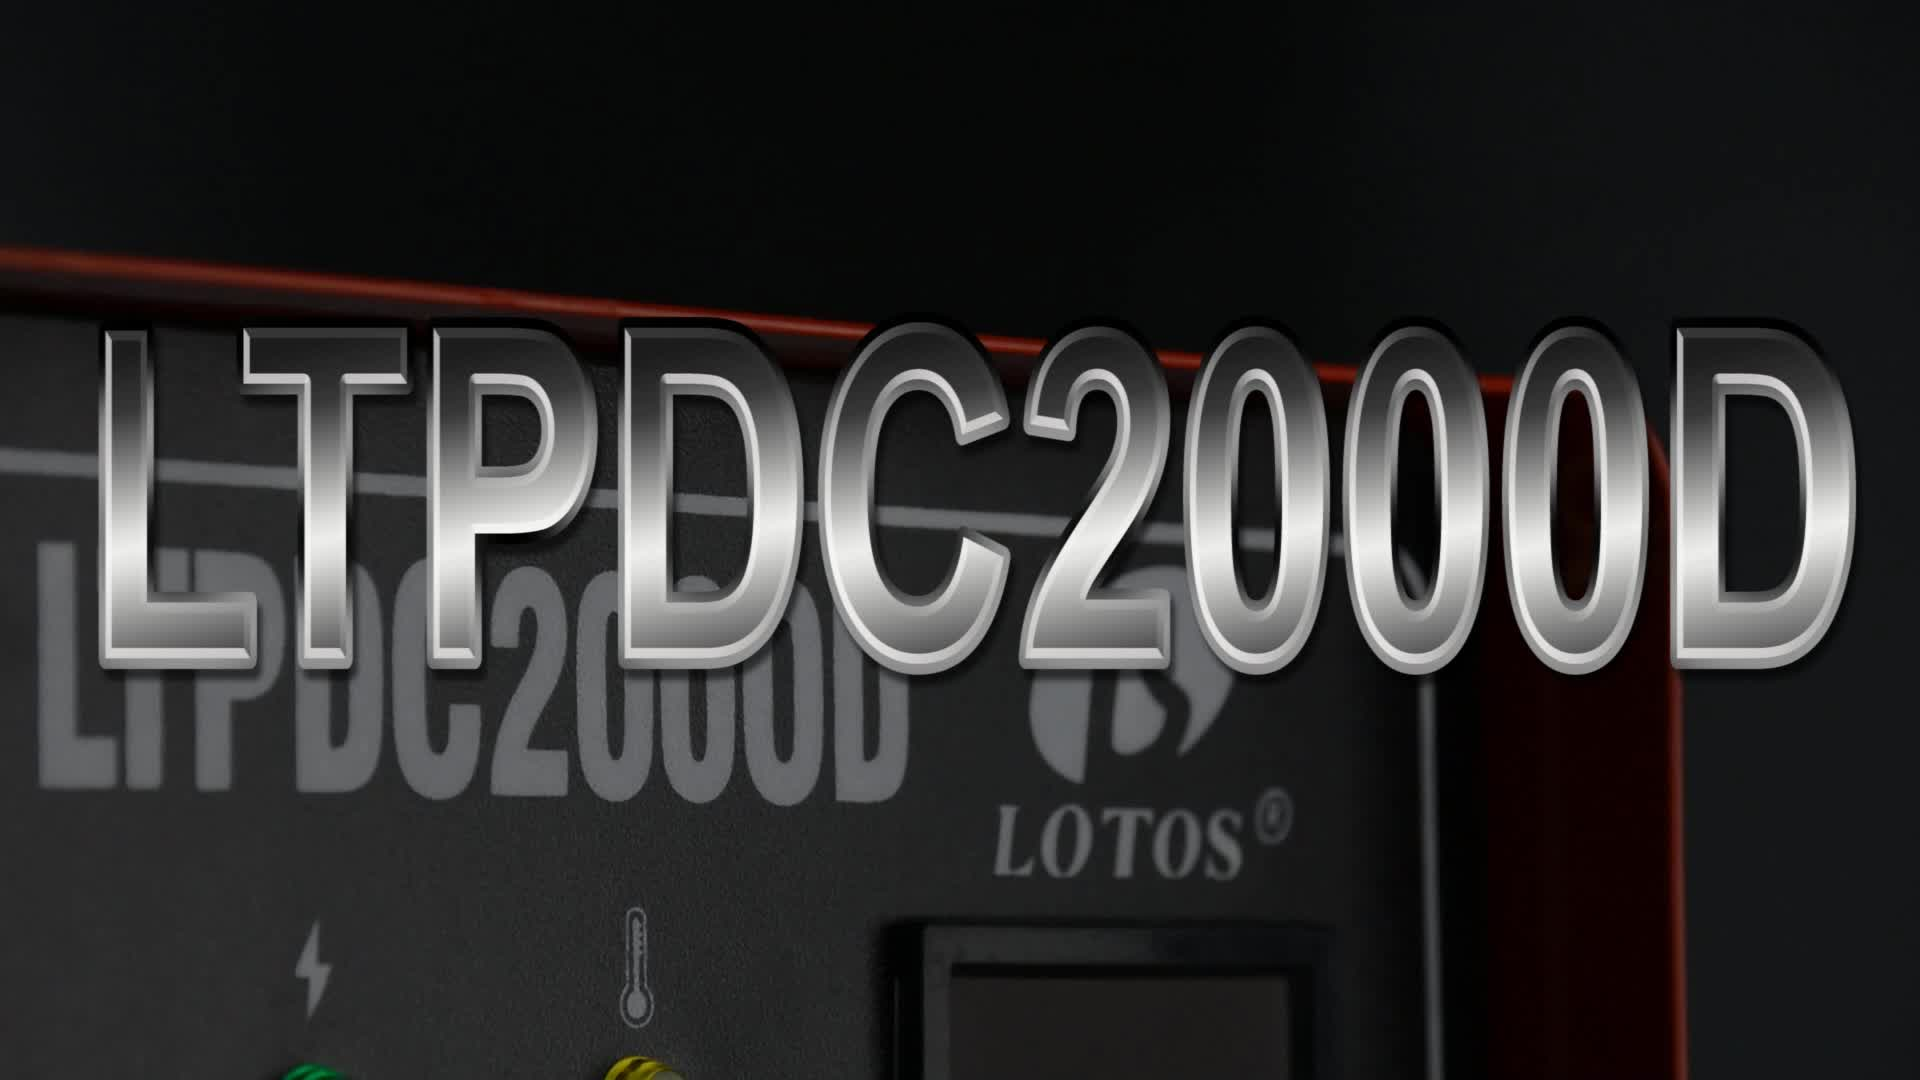 Lotos Ltpdc2000d 3 In 1 110 220v Gasless Mig Welder Inverter Flux Wiring For Cored Wire